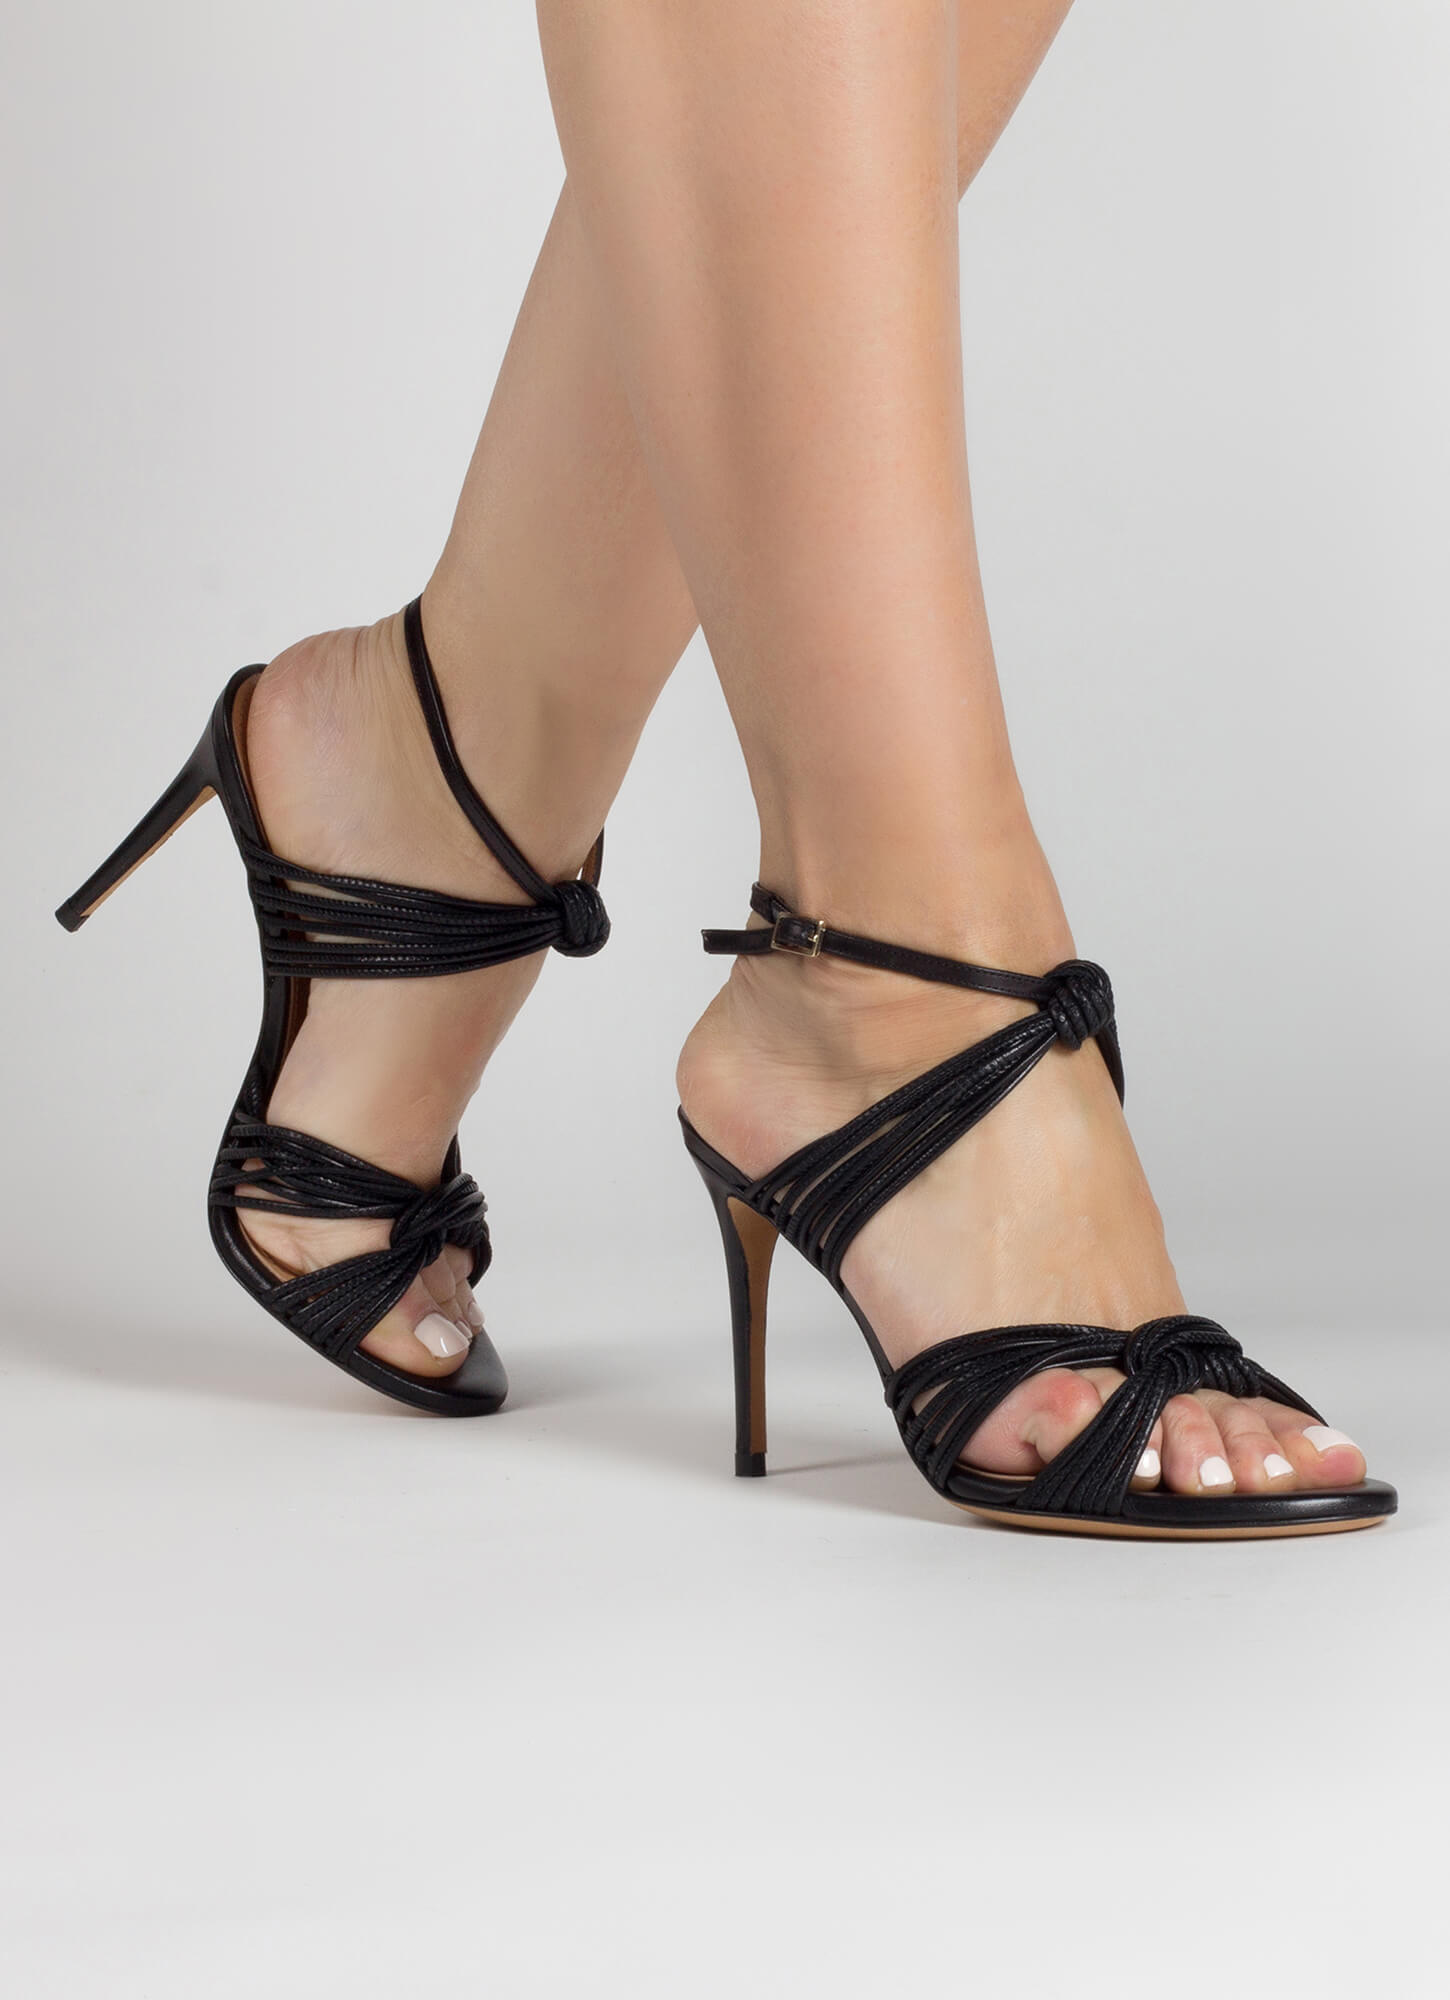 Knotted High Heeled Sandals In Black Leather Pura Lopez